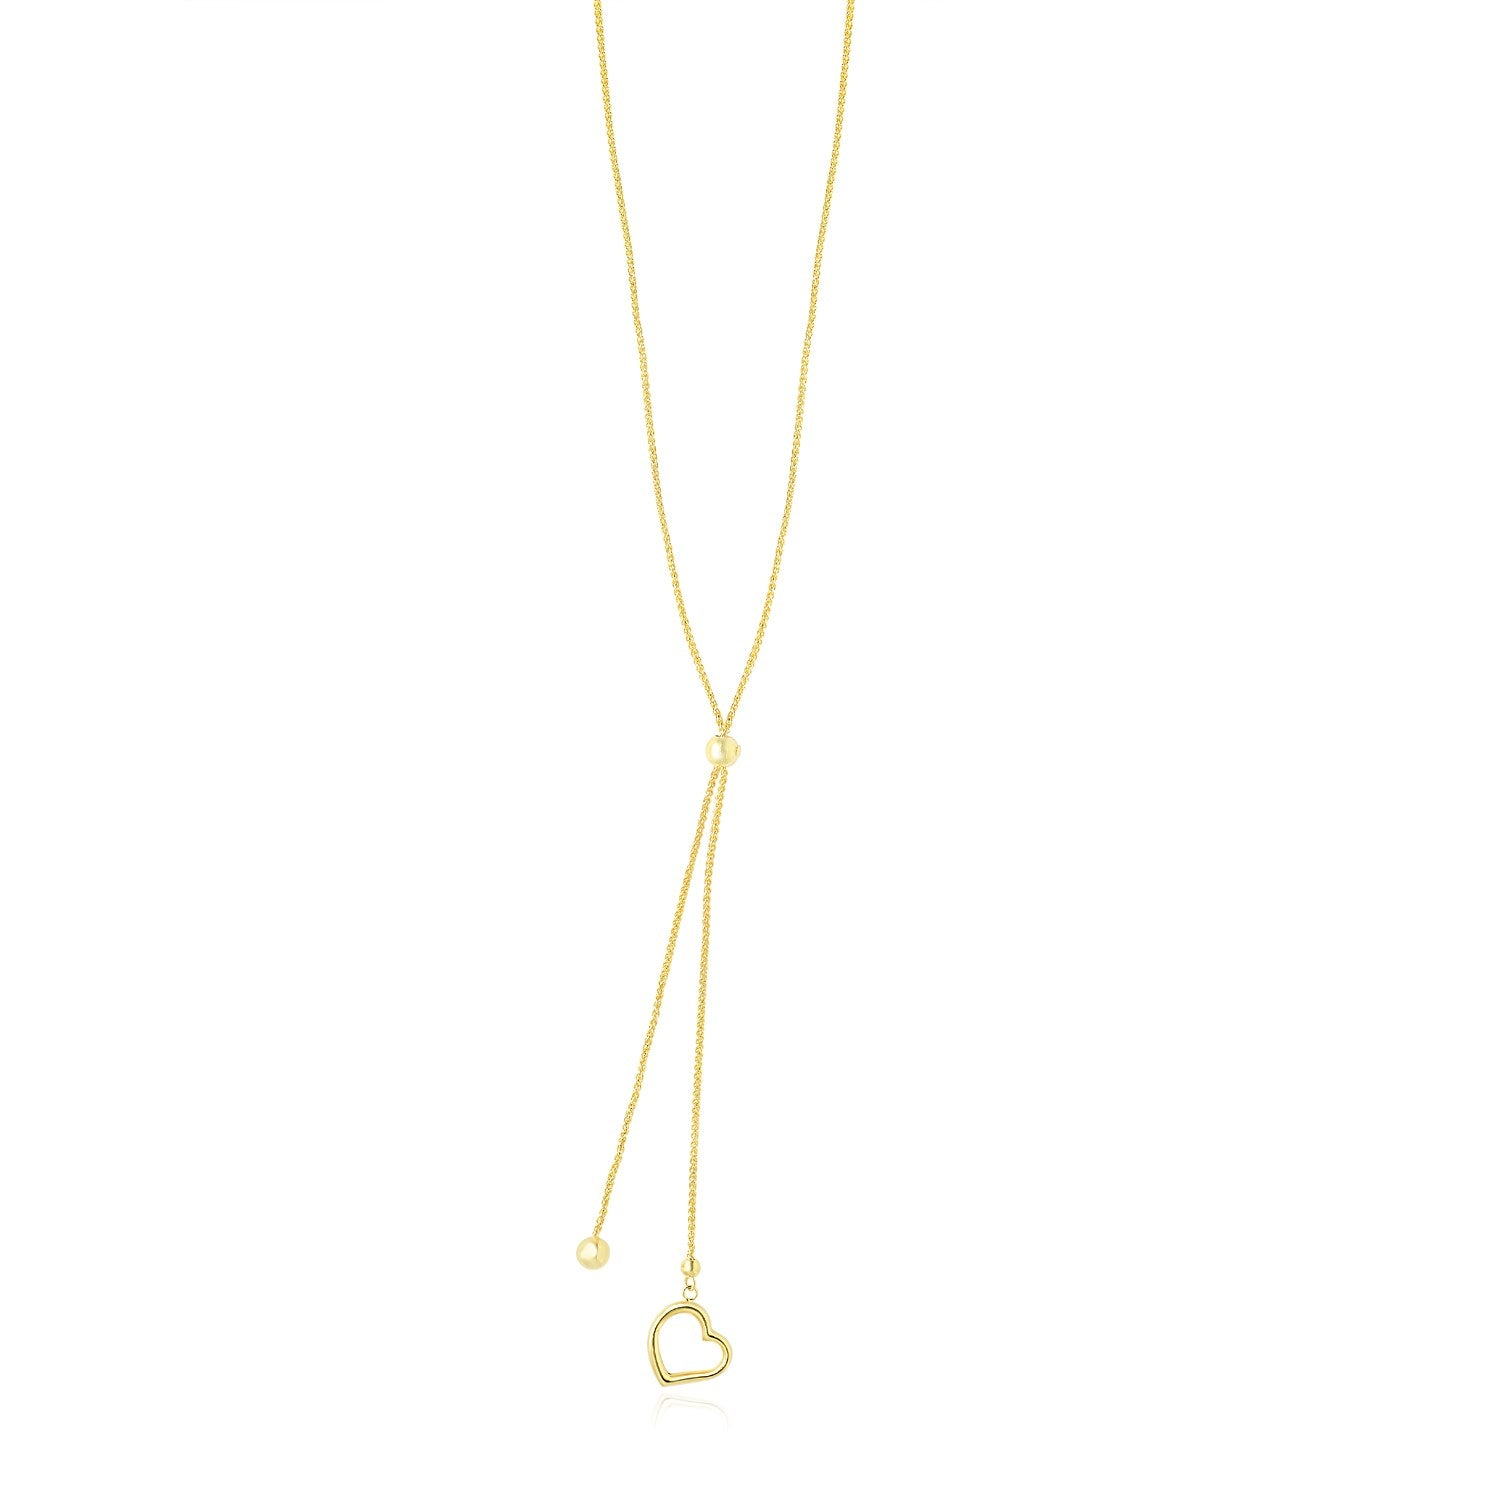 14K Yellow Gold Cut-out Heart Adjustable Lariat Style Necklace